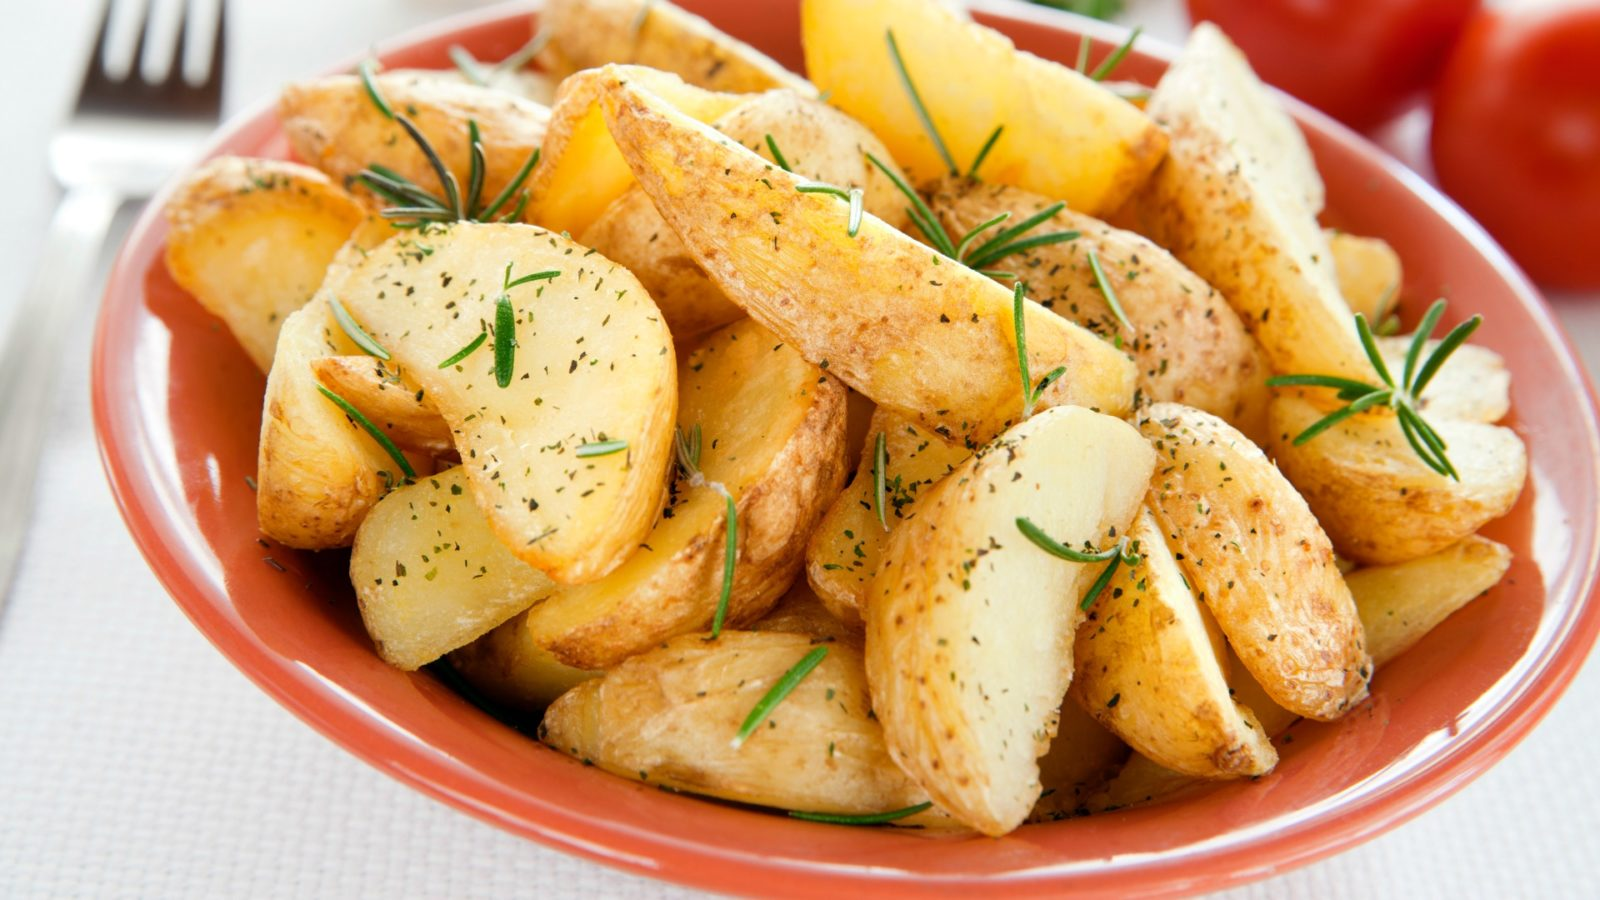 Roasted potatoes with rosemary in a bowl